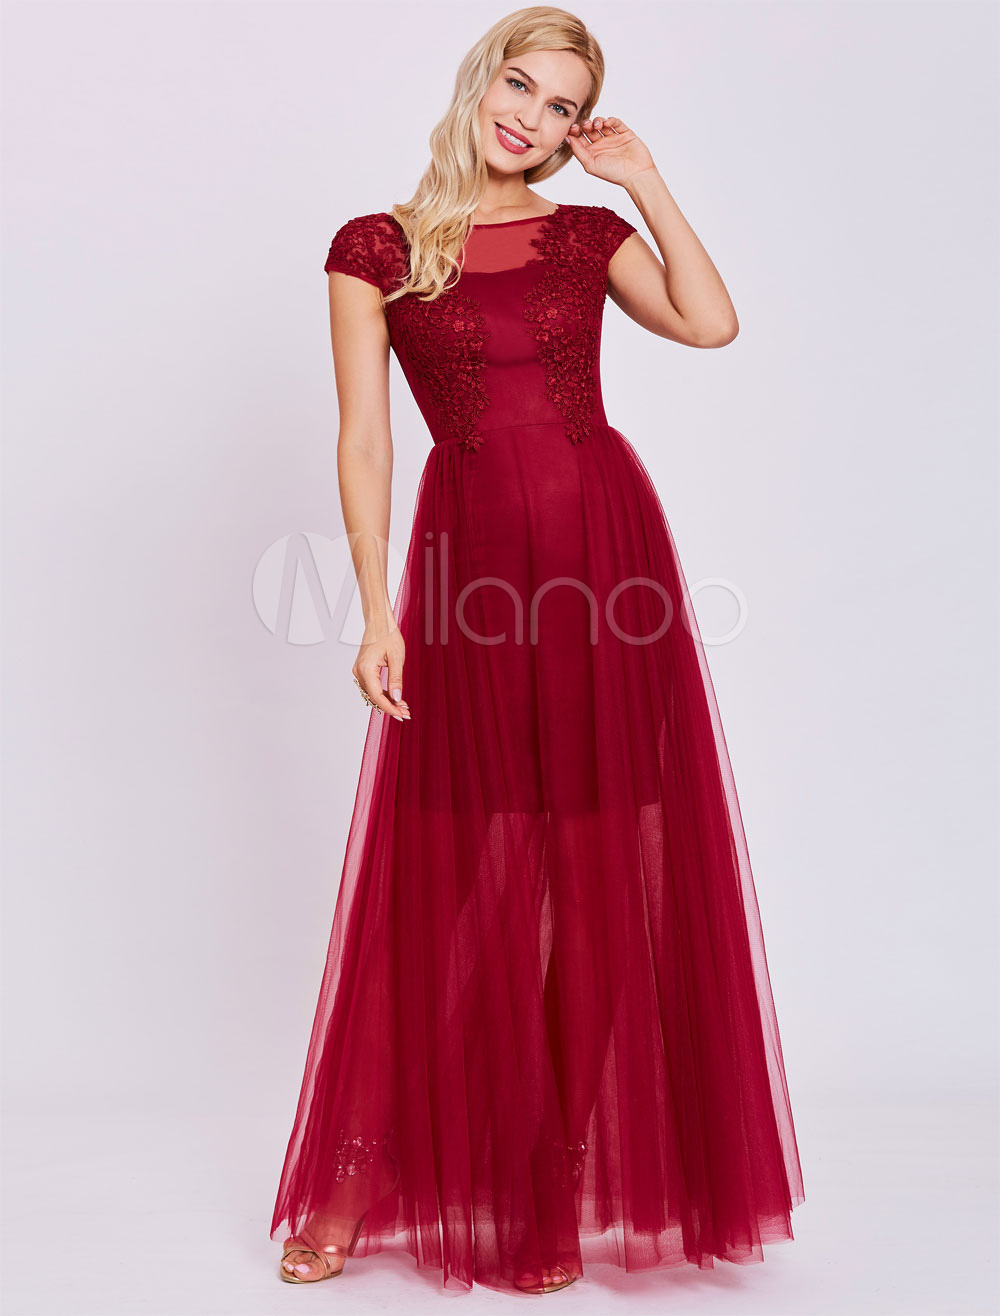 5dcfcdcae72 ... Tulle Formal Gowns Lace Applique Illusion Floor Length Special Occasion  Dress-. 12. 32%OFF. Color Burgundy